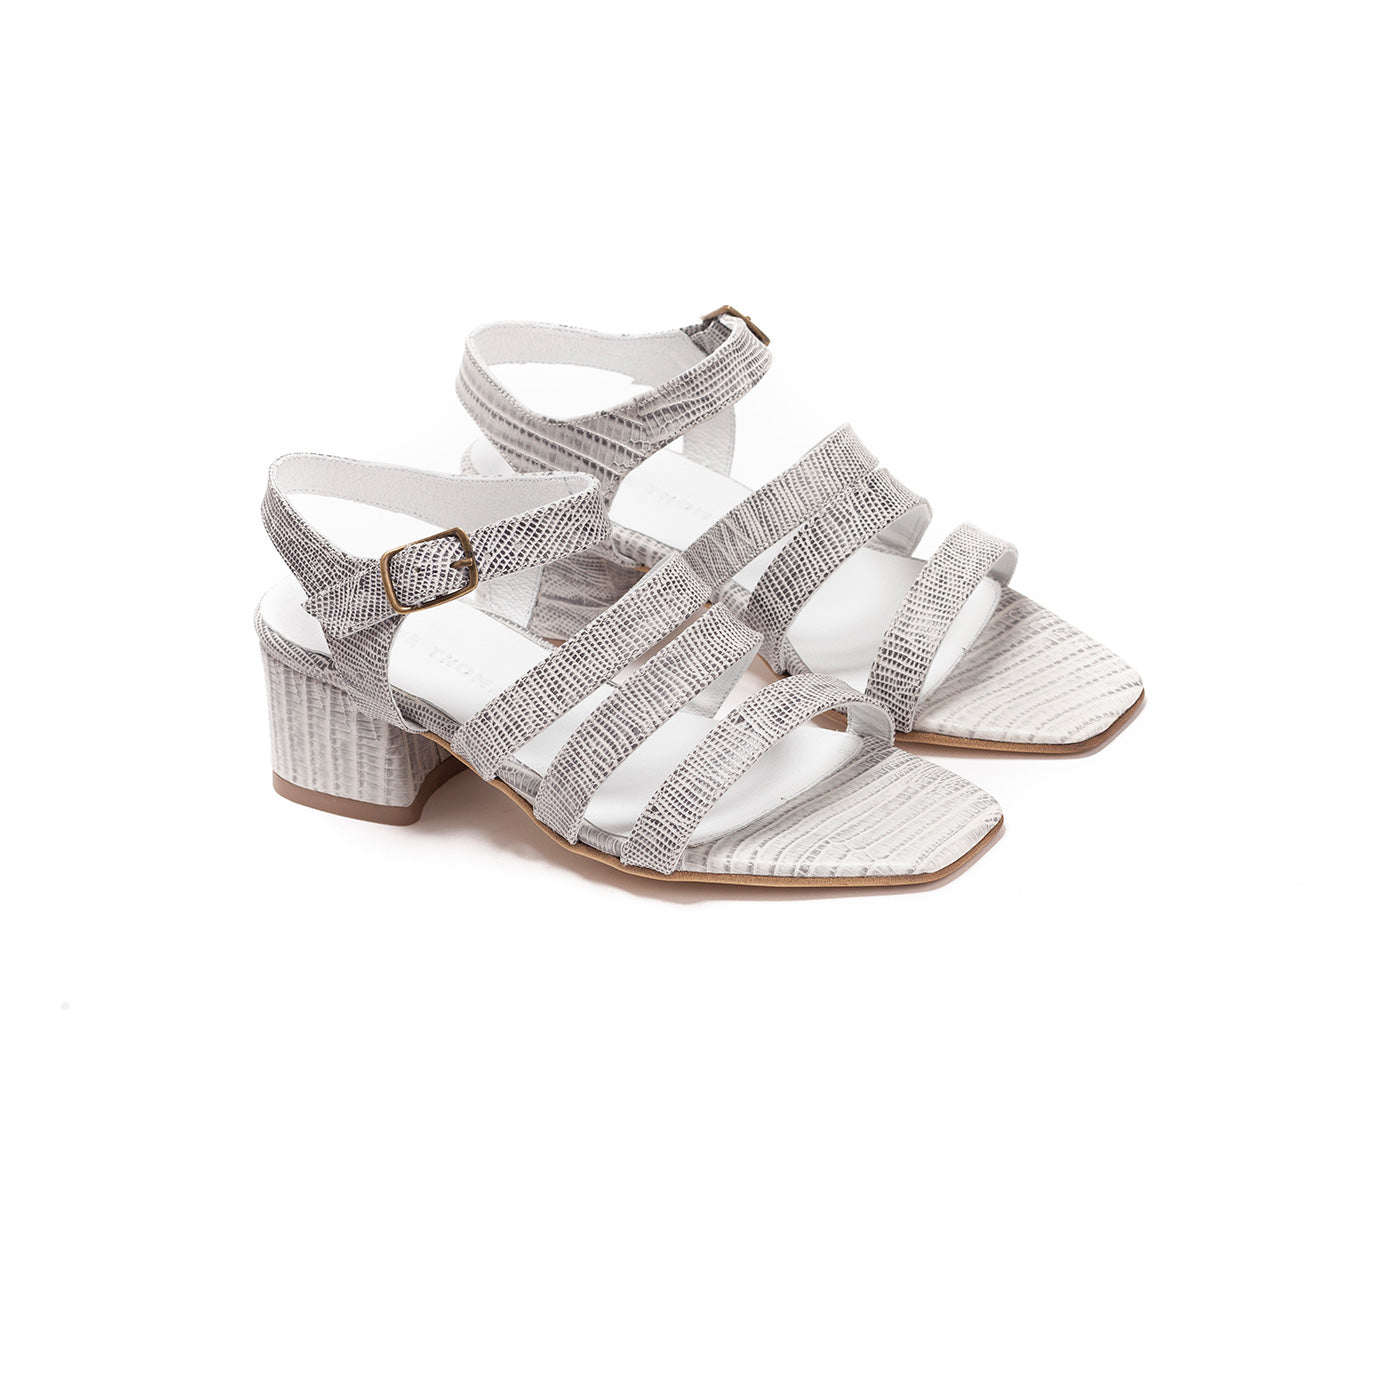 Anais - Strappy Sandals